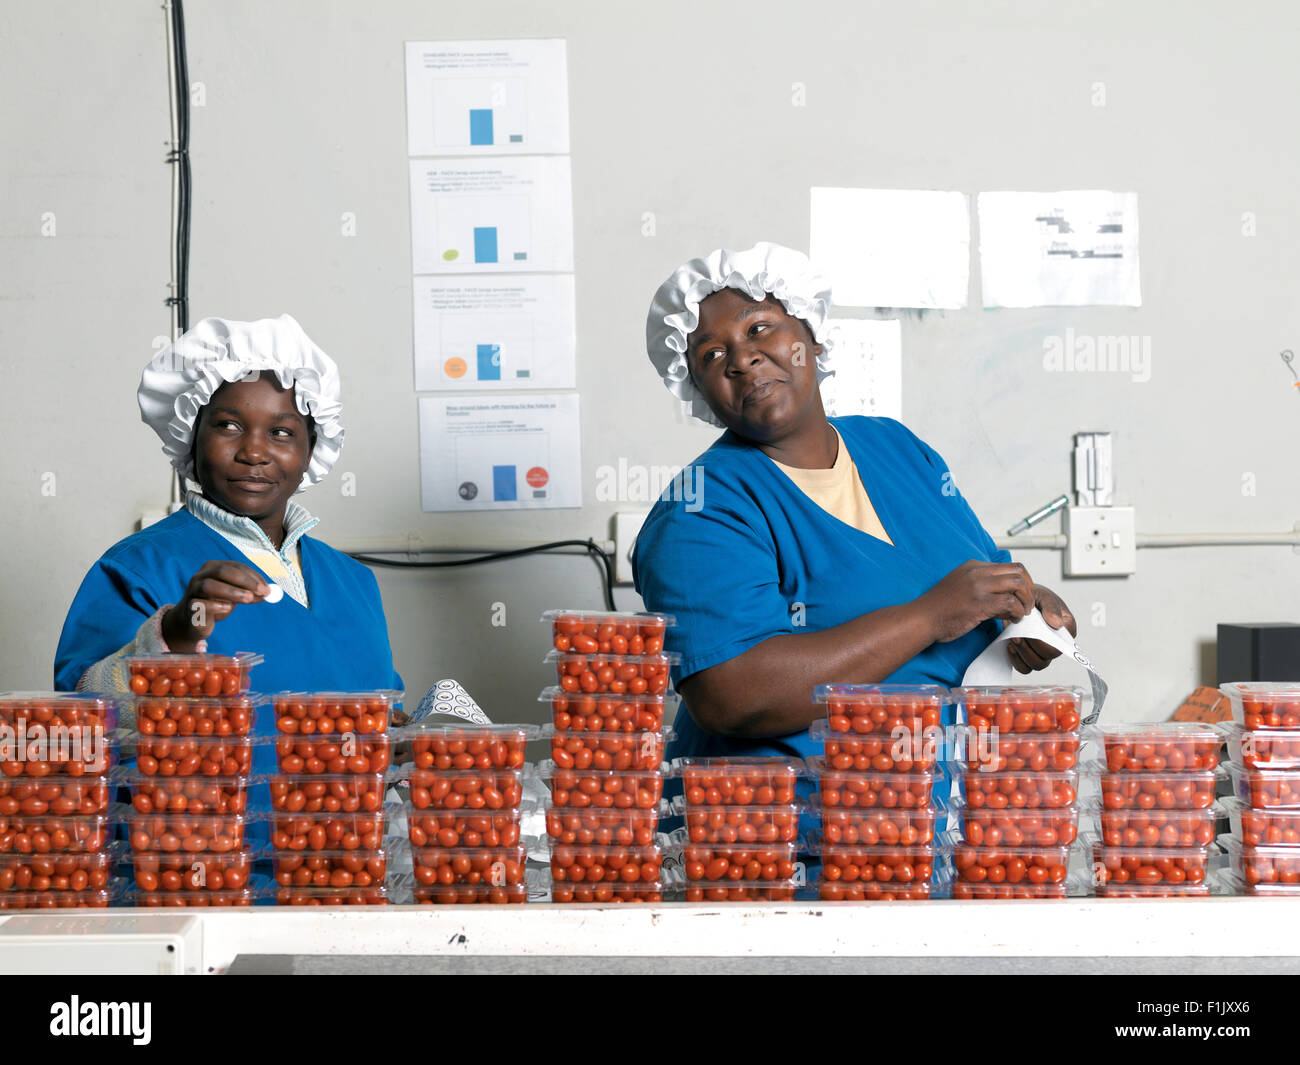 Labeling of packaged baby tomatoes, LA Visage & Seun - Stock Image